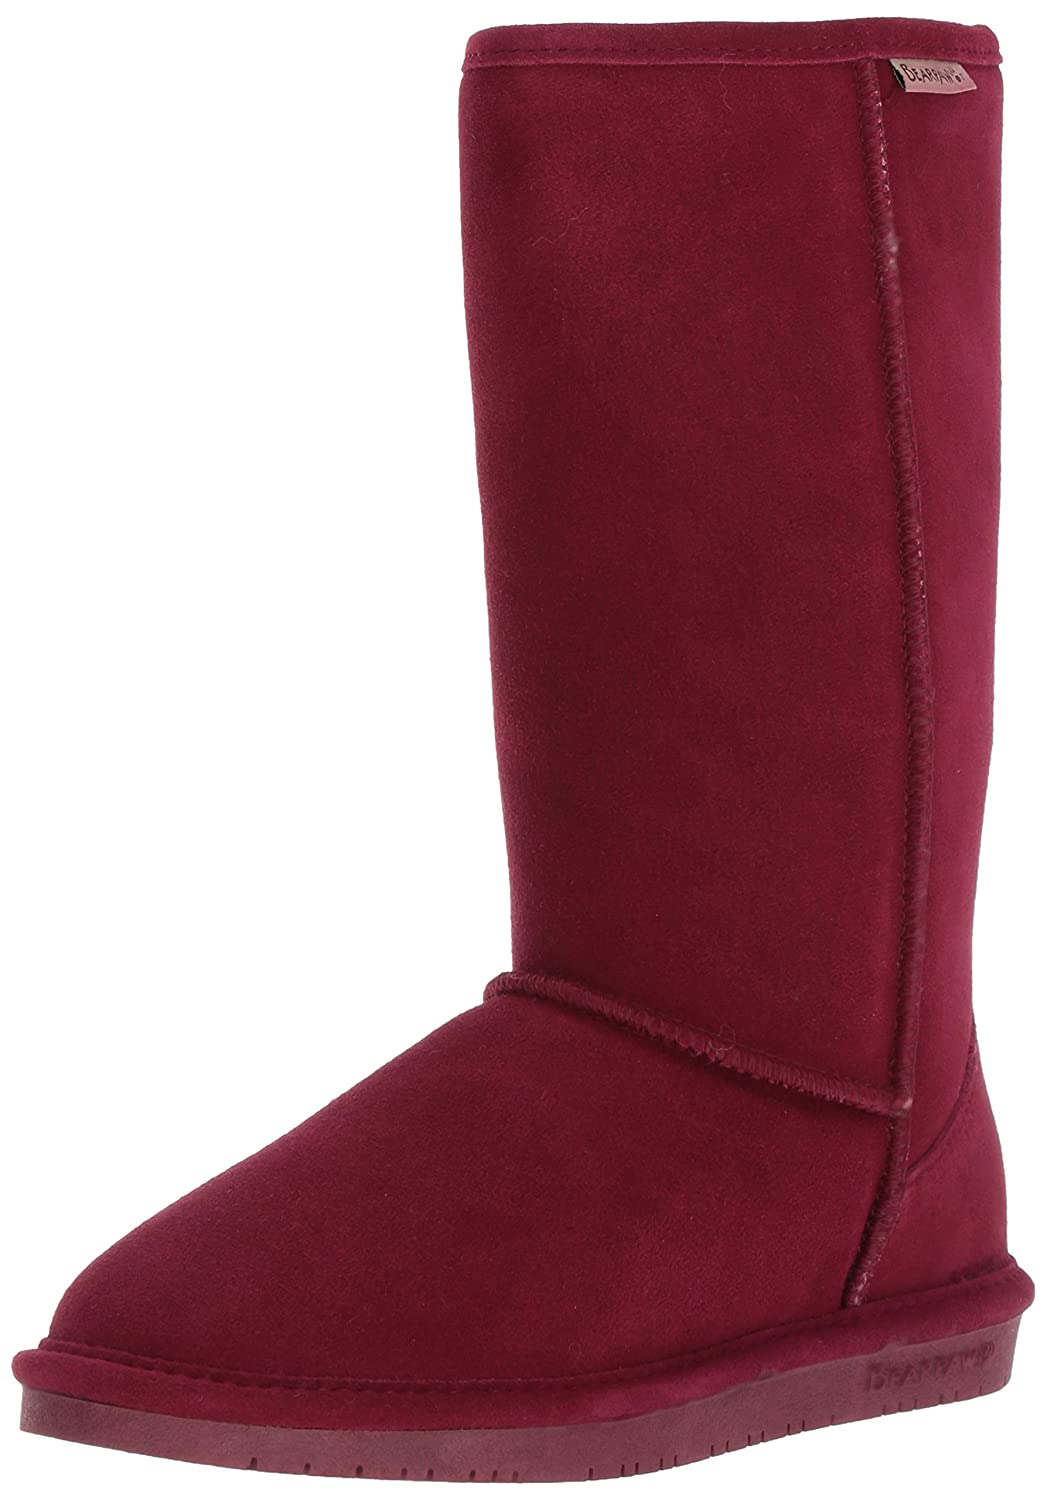 BEARPAW Women's Emma Tall Mid Calf Boot B01DK4A0VQ 7 B(M) US|Bordeaux